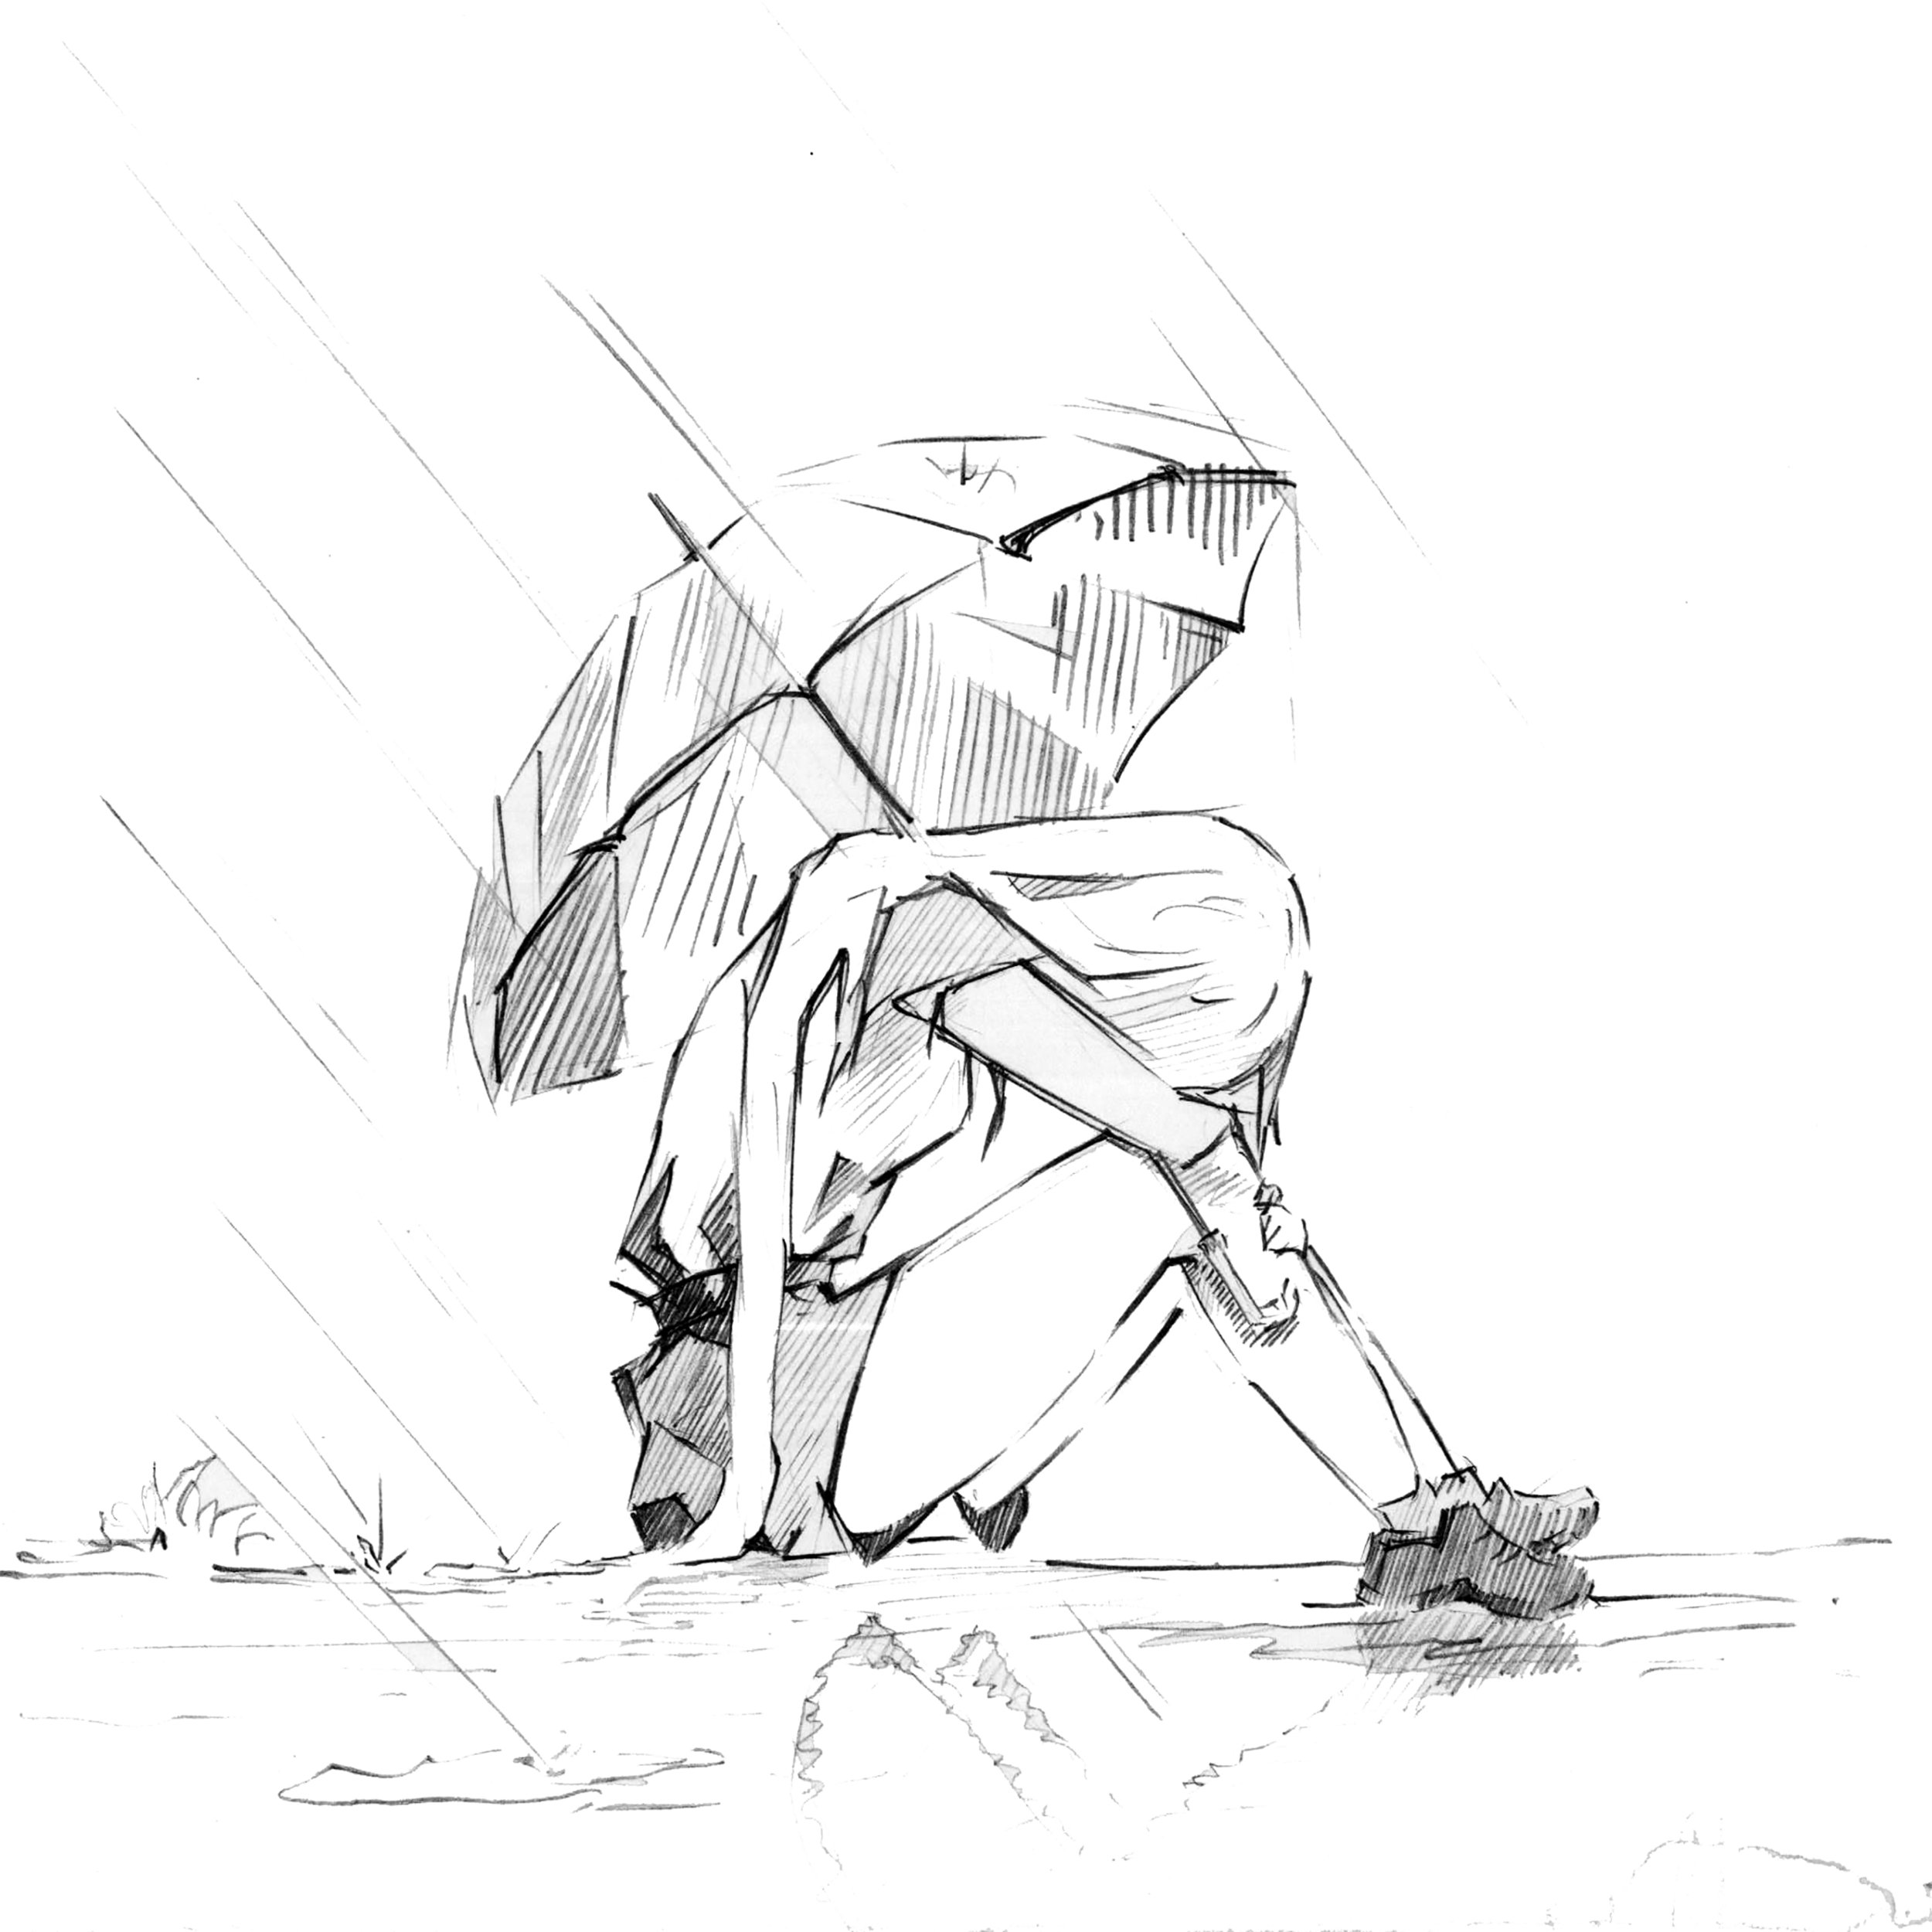 pouring.jpg